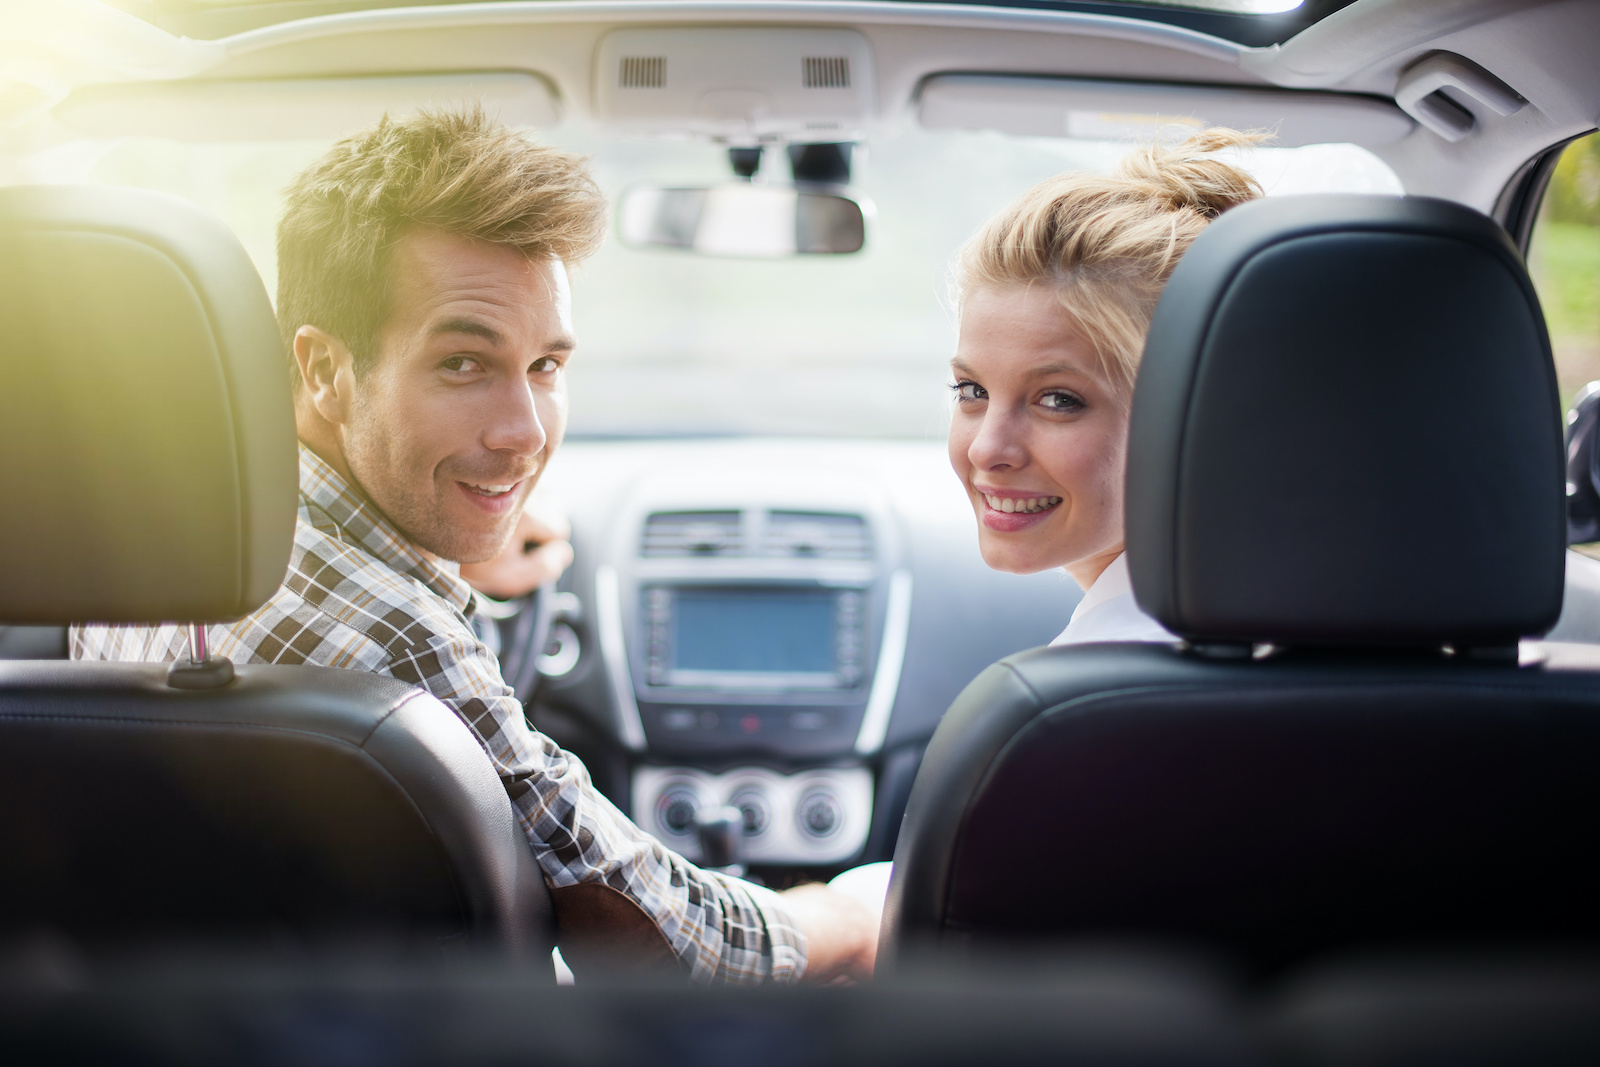 How to build credit without a credit card: A young couple looks back from the front seat of their new car after having secured an auto loan